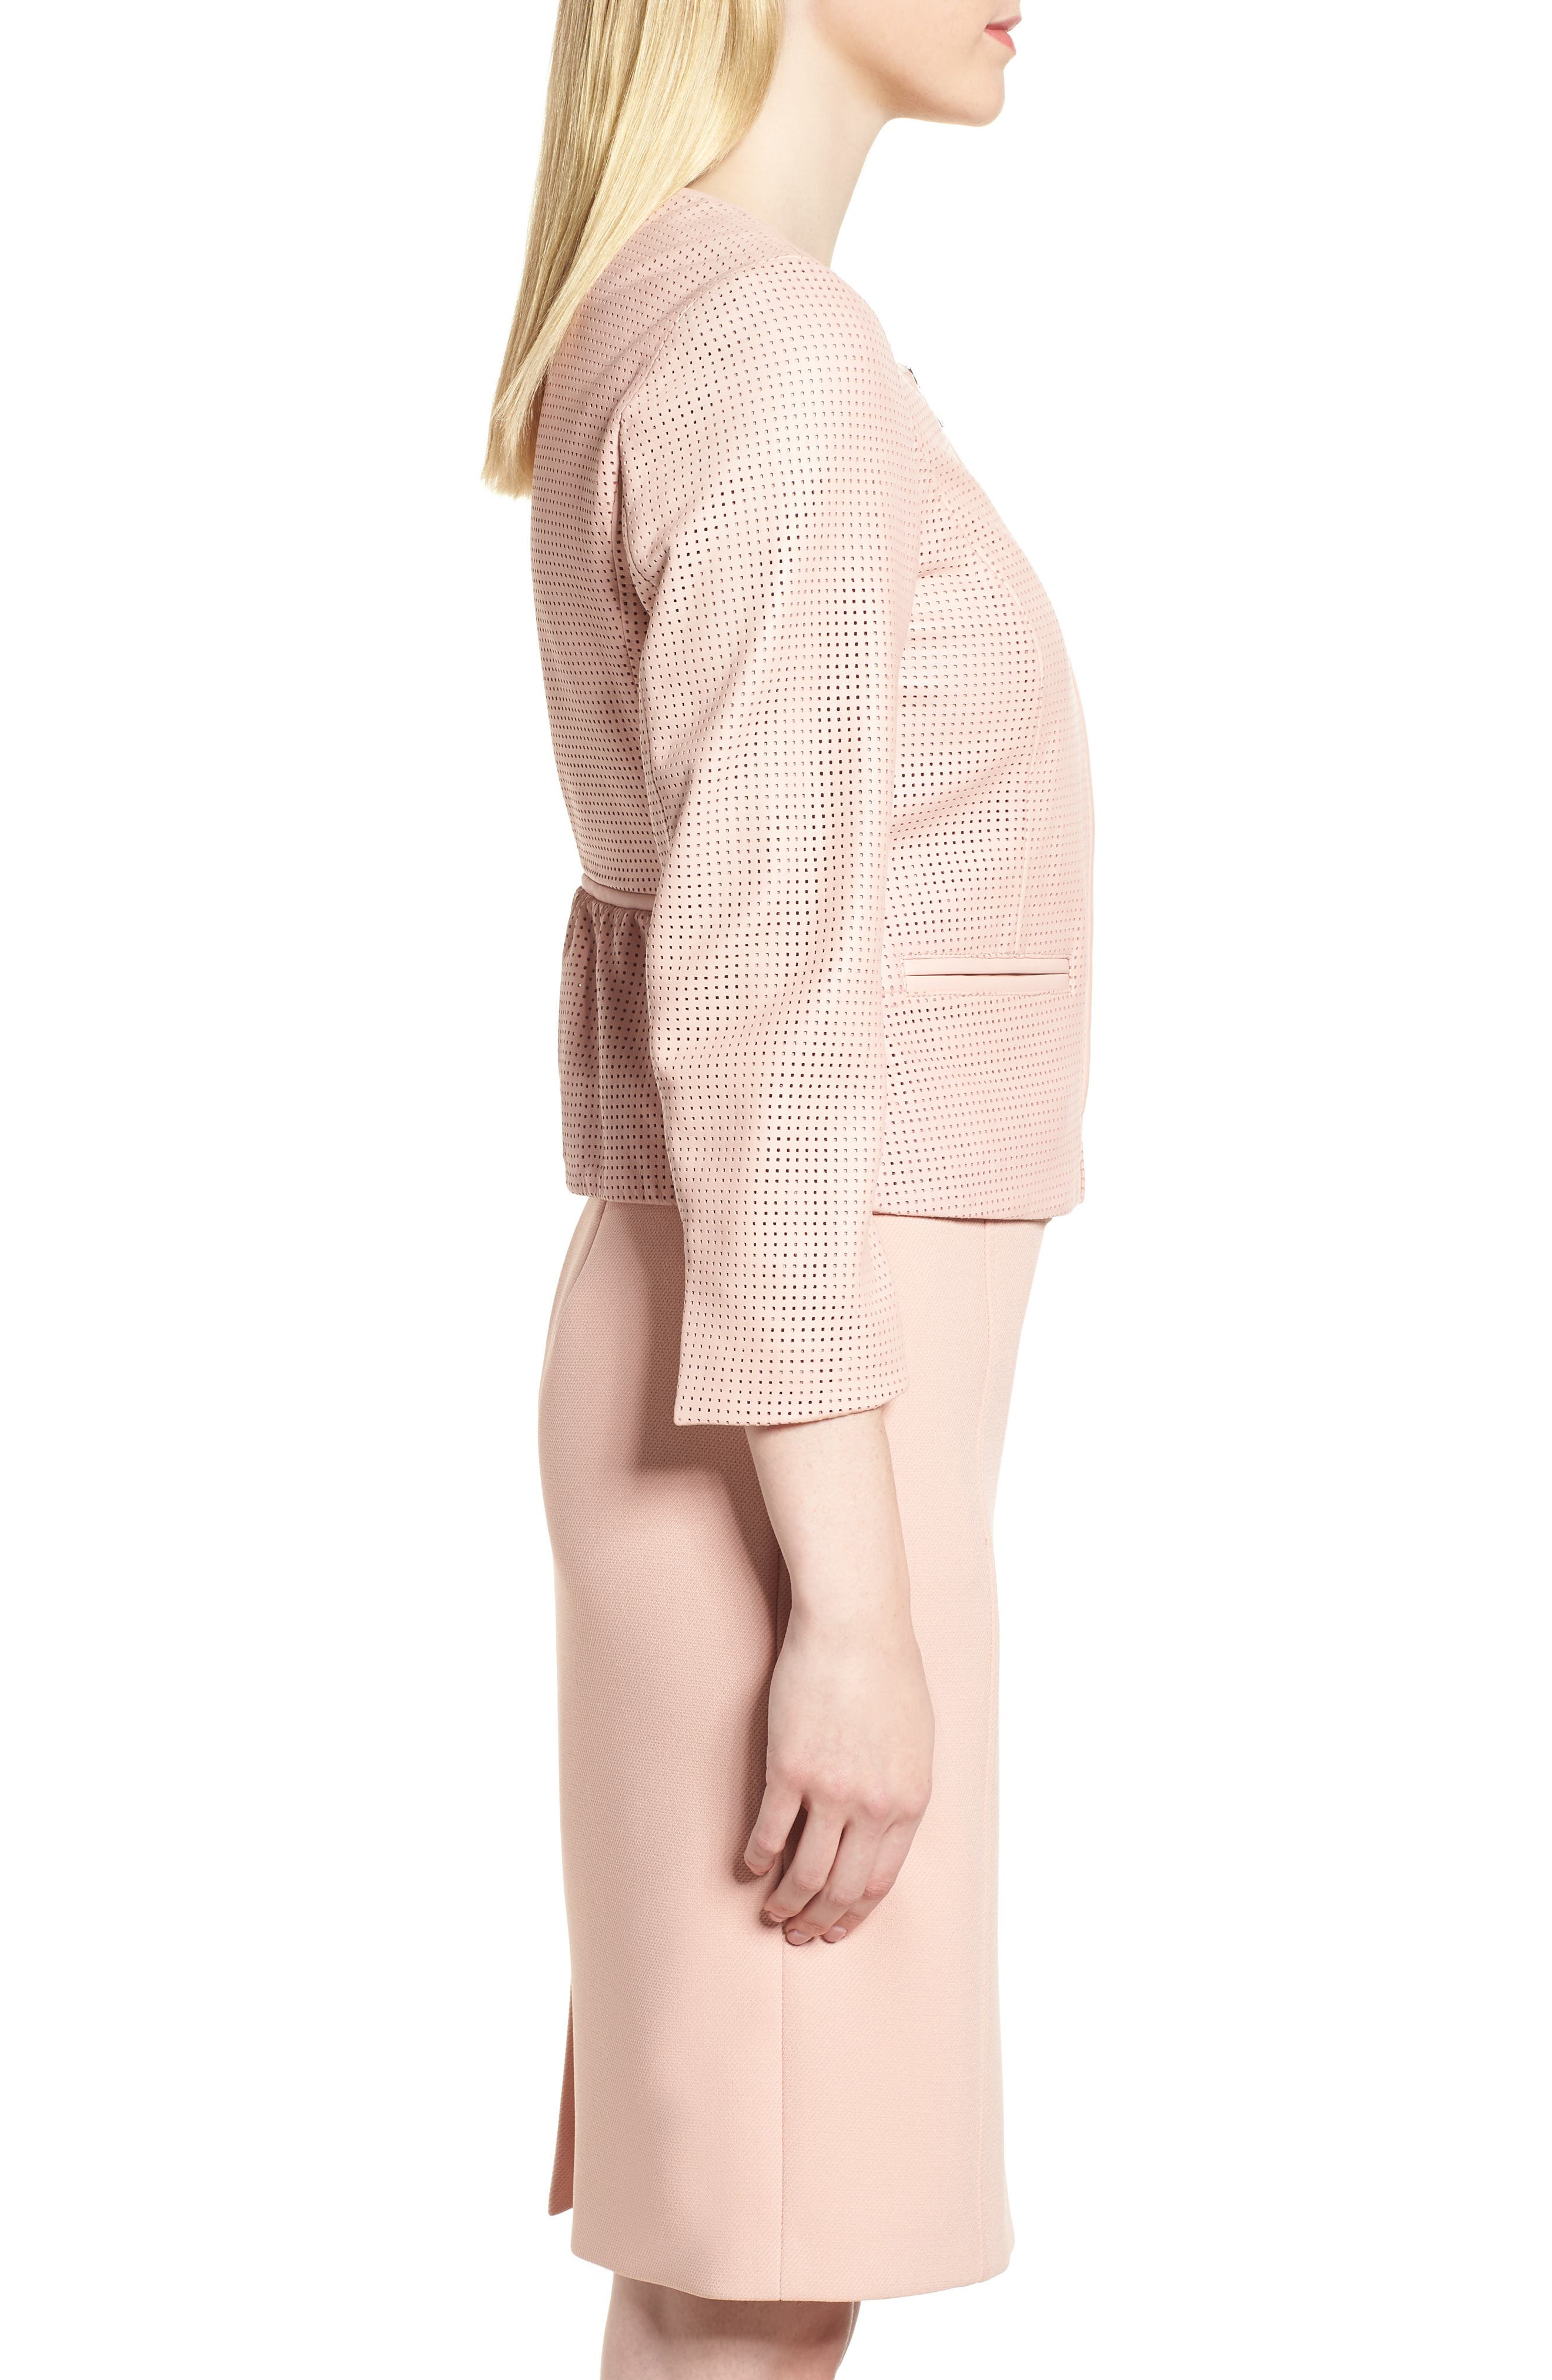 Sallotina Perforated Leather Jacket,                             Alternate thumbnail 3, color,                             Blush